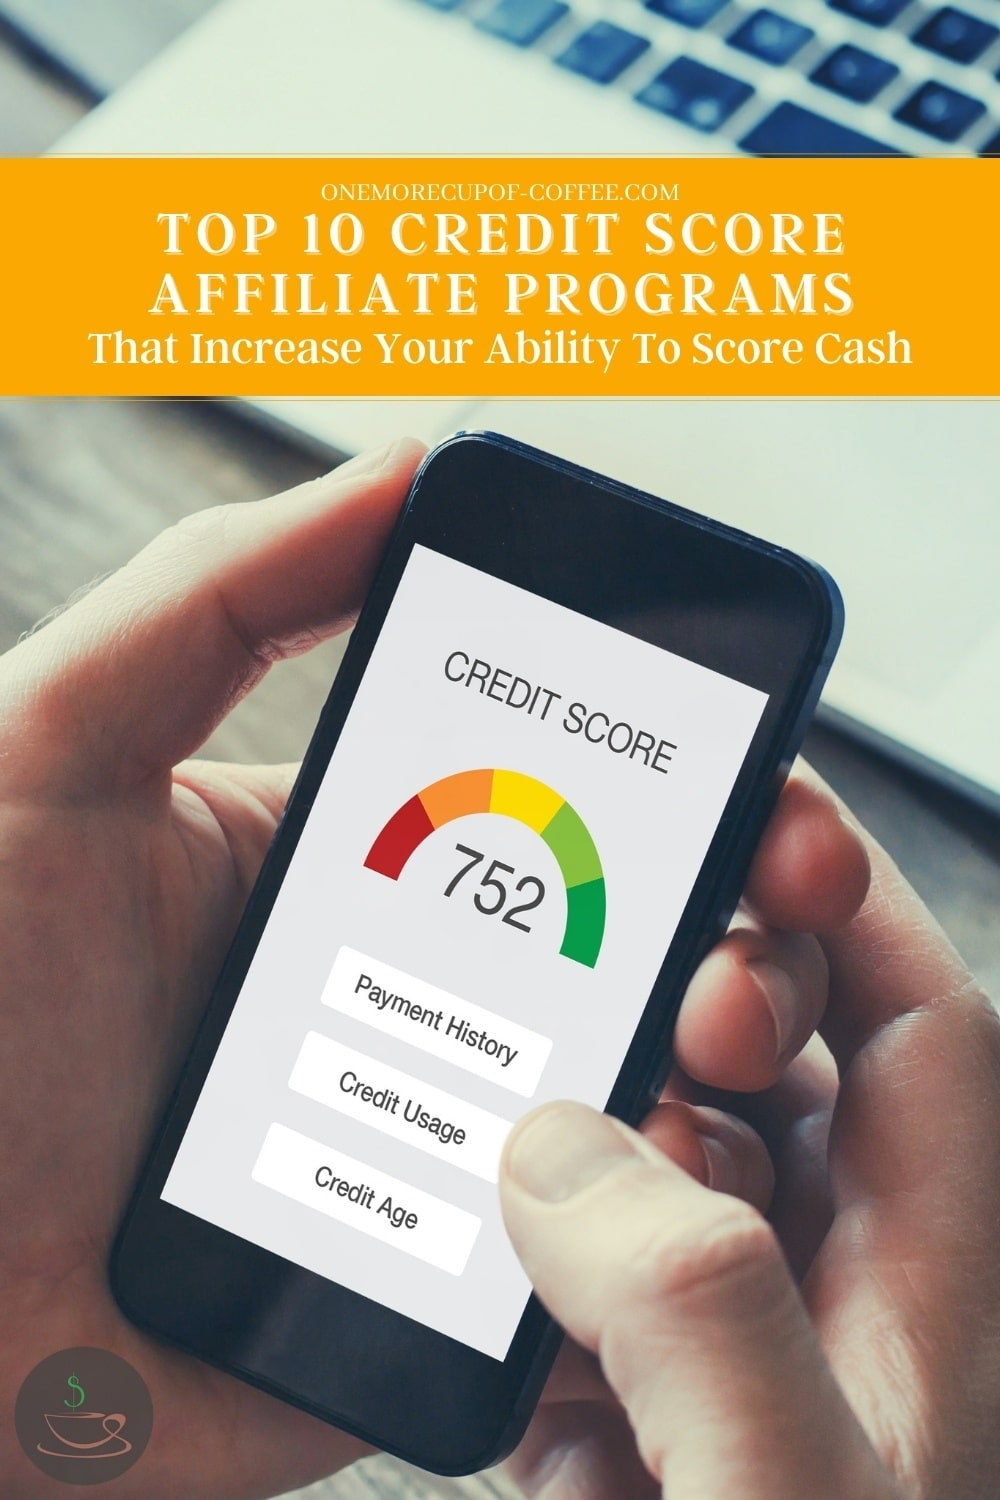 """mobile phone showing credit score with laptop on the background; with text overlay """"Top 10 Credit Score Affiliate Programs That Increase Your Ability To Score Cash"""""""